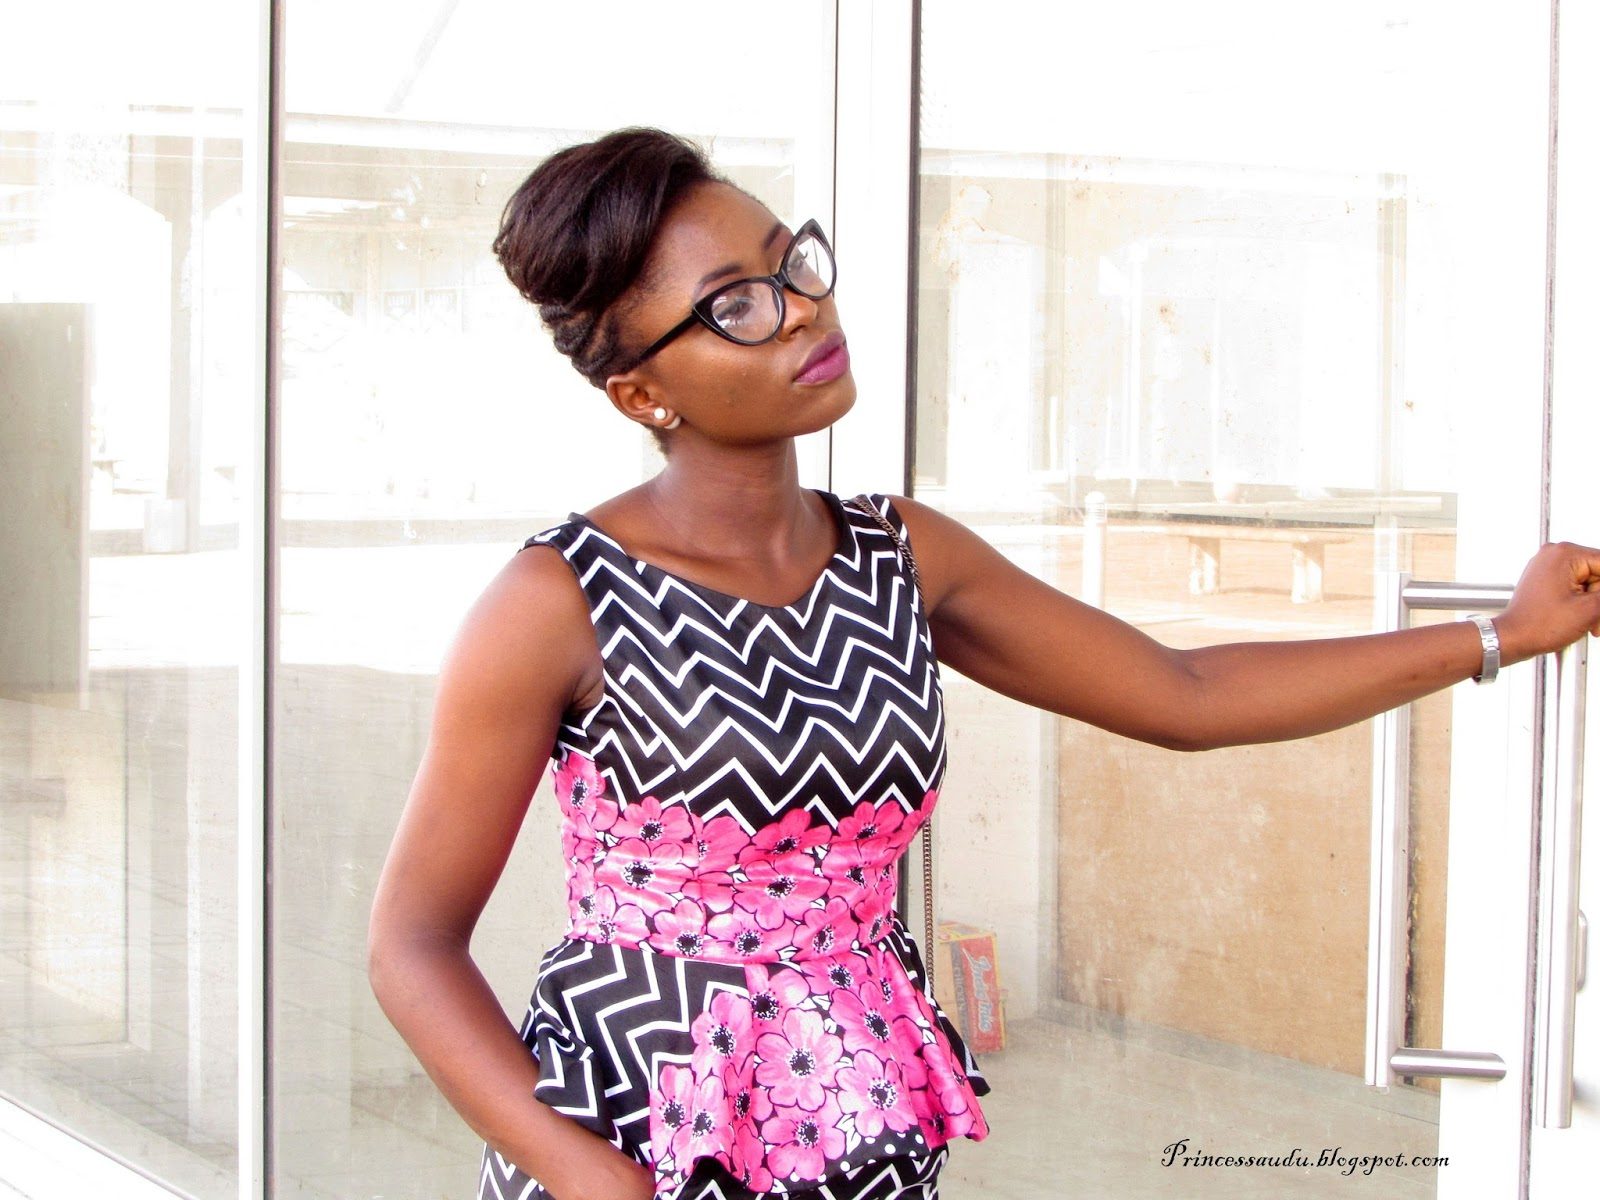 peplum top, florals, prints, cat eye frames, glasses